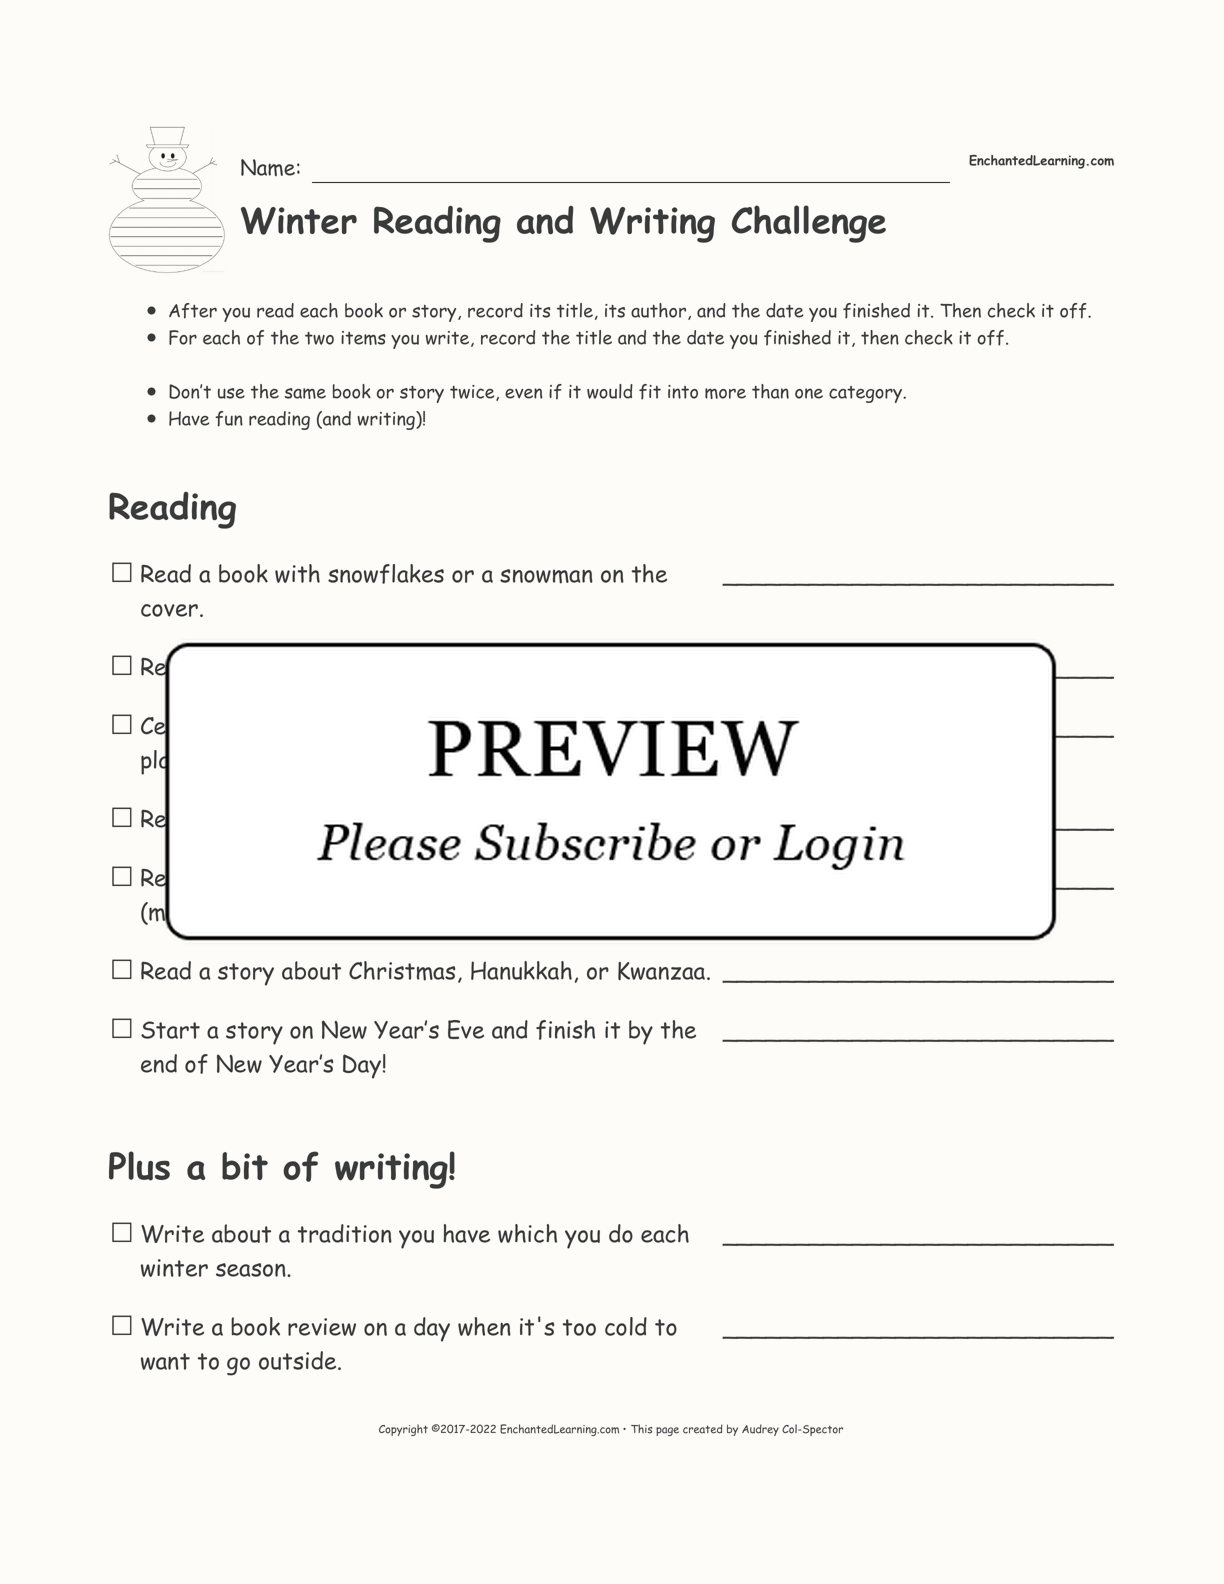 Winter Reading and Writing Challenge interactive printout page 1